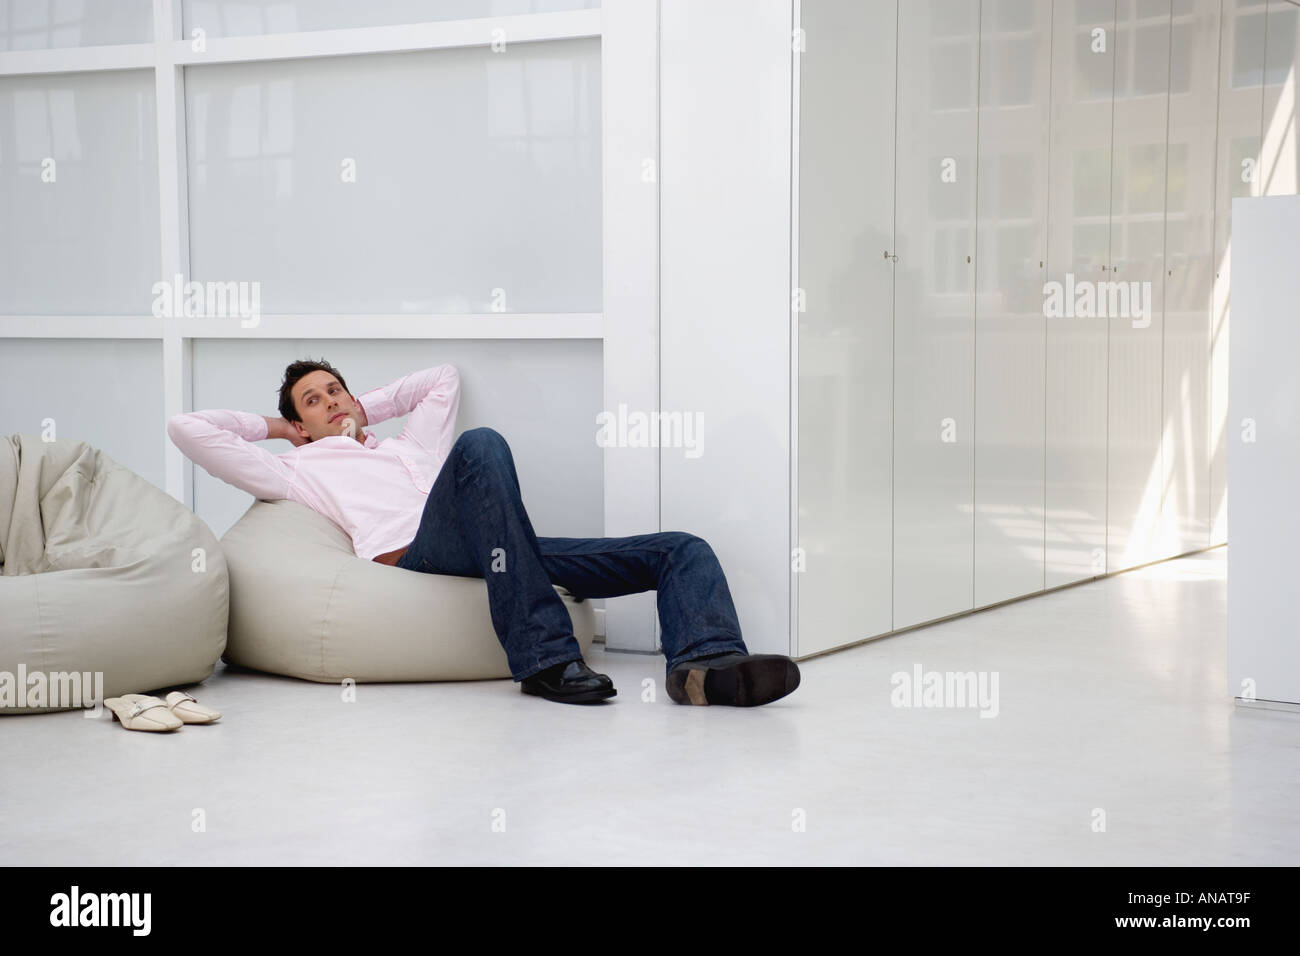 man sitting comfortably relaxing on bean bag in office rest area - Stock Image